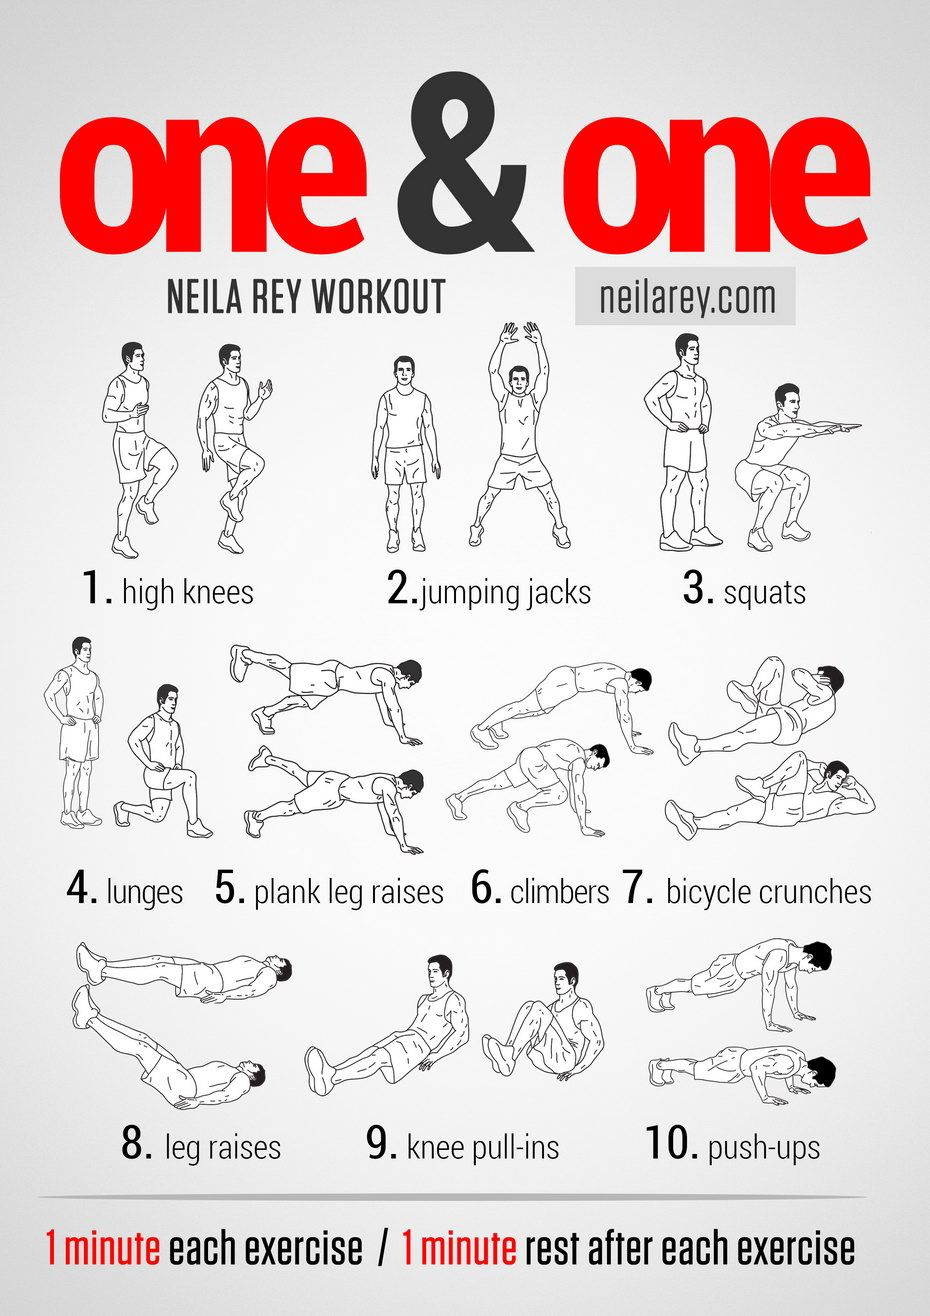 One One Workout Works Aerobic And Cardiovascular Systems And Trains Your Arms Legs Glutes And A Trainierte Korper Korpergewicht Training Fitnessubungsplan